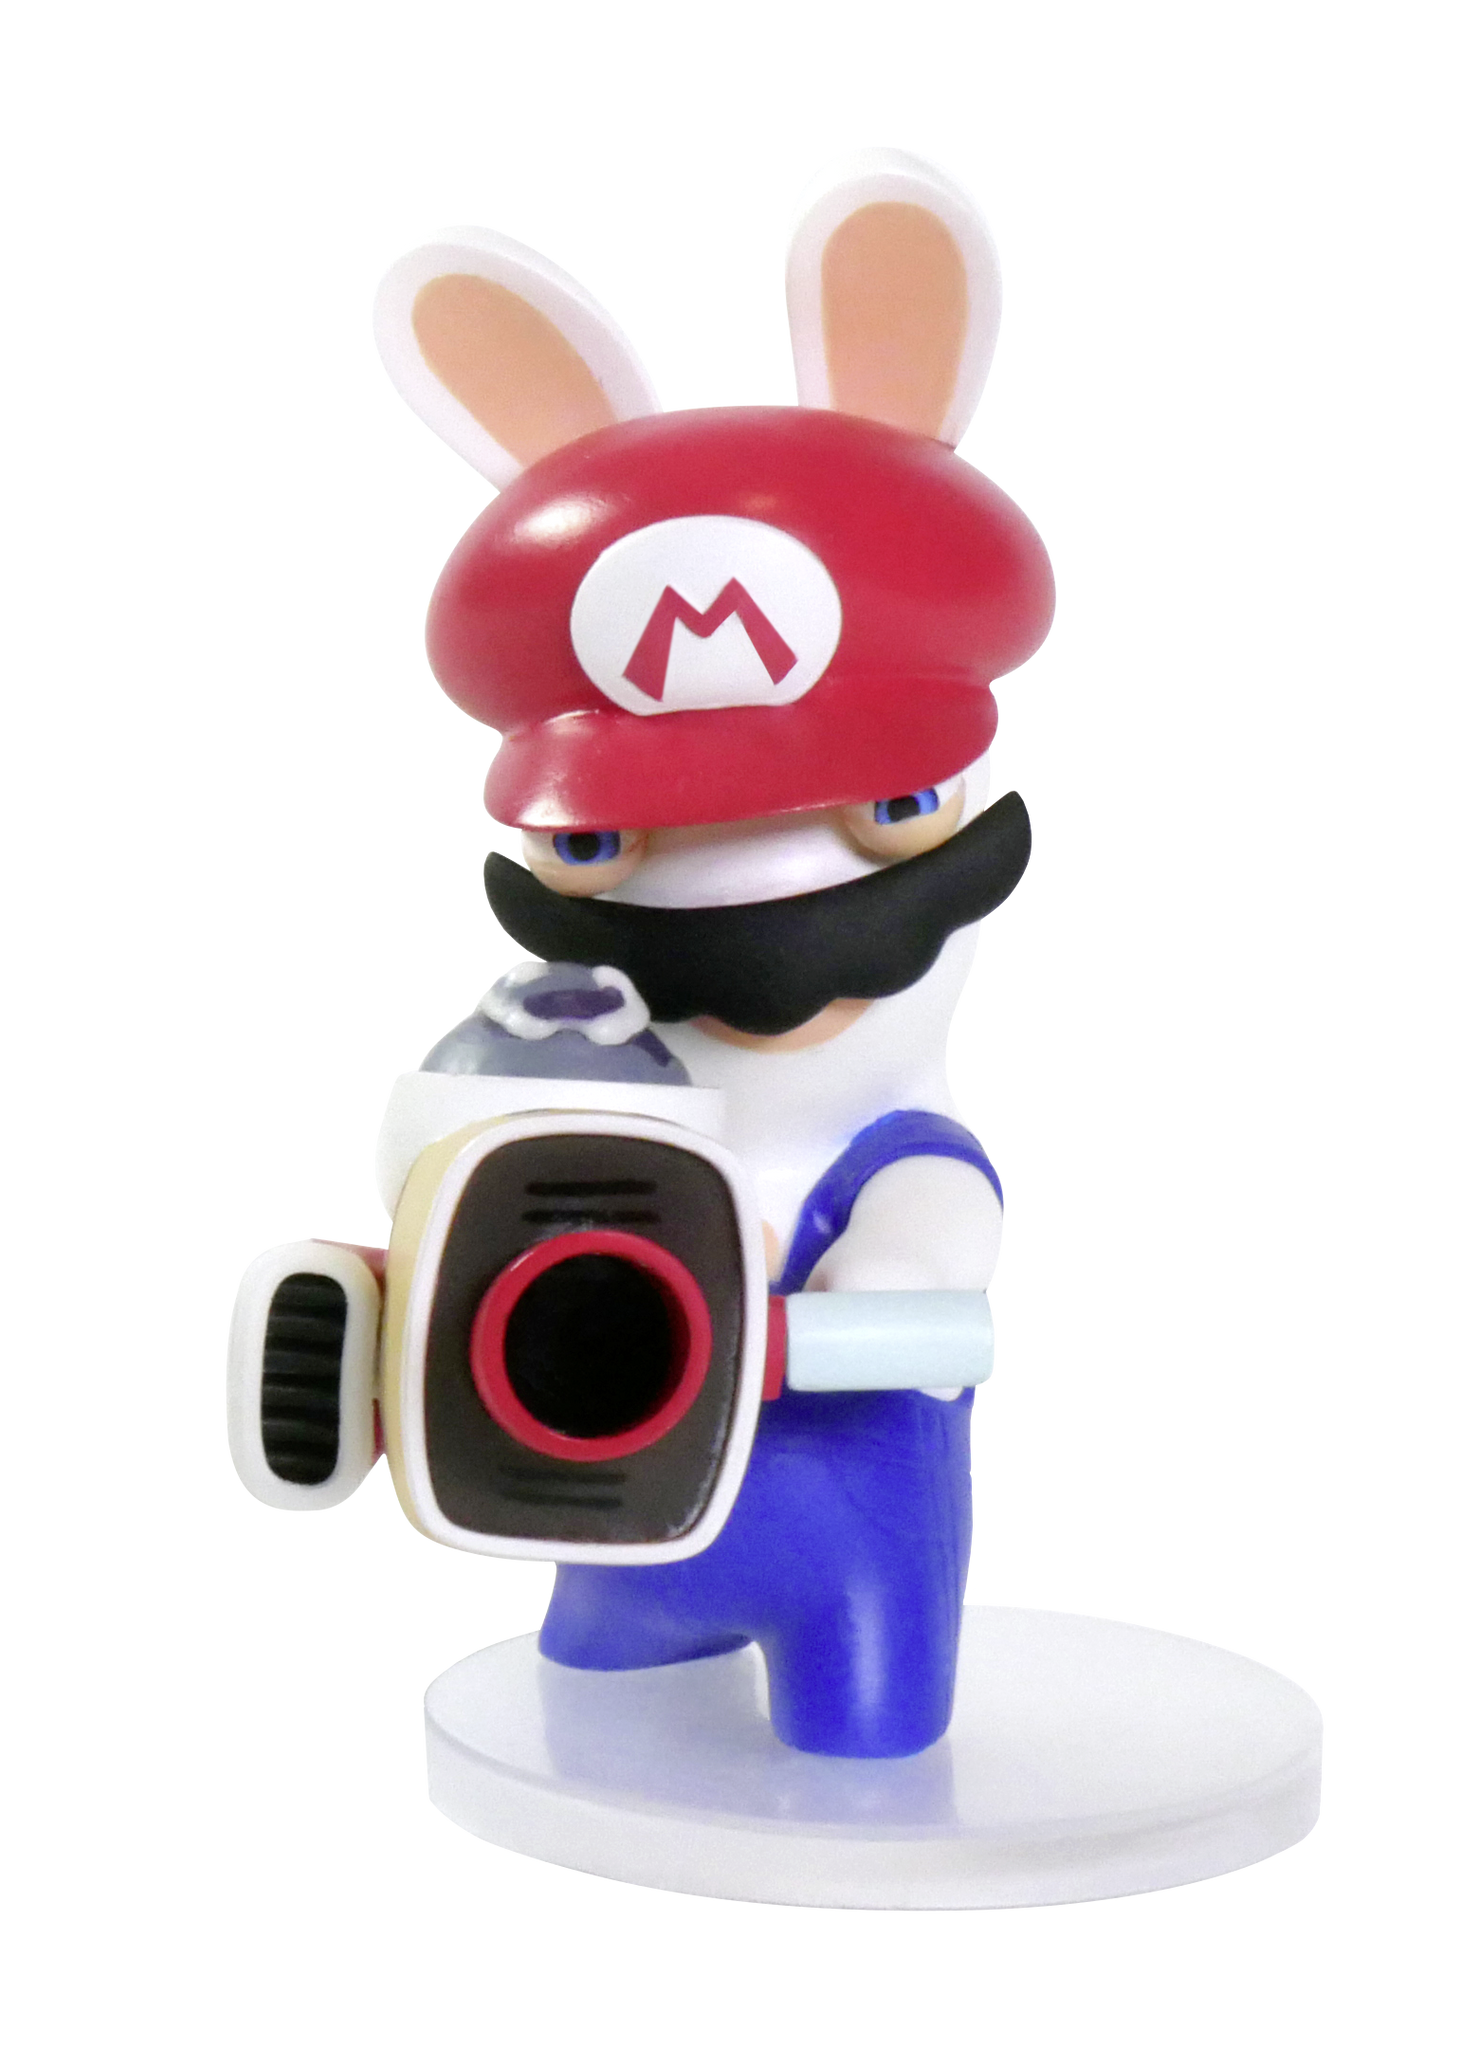 Mario + Rabbids Kingdom Battle: Rabbid Mario 3